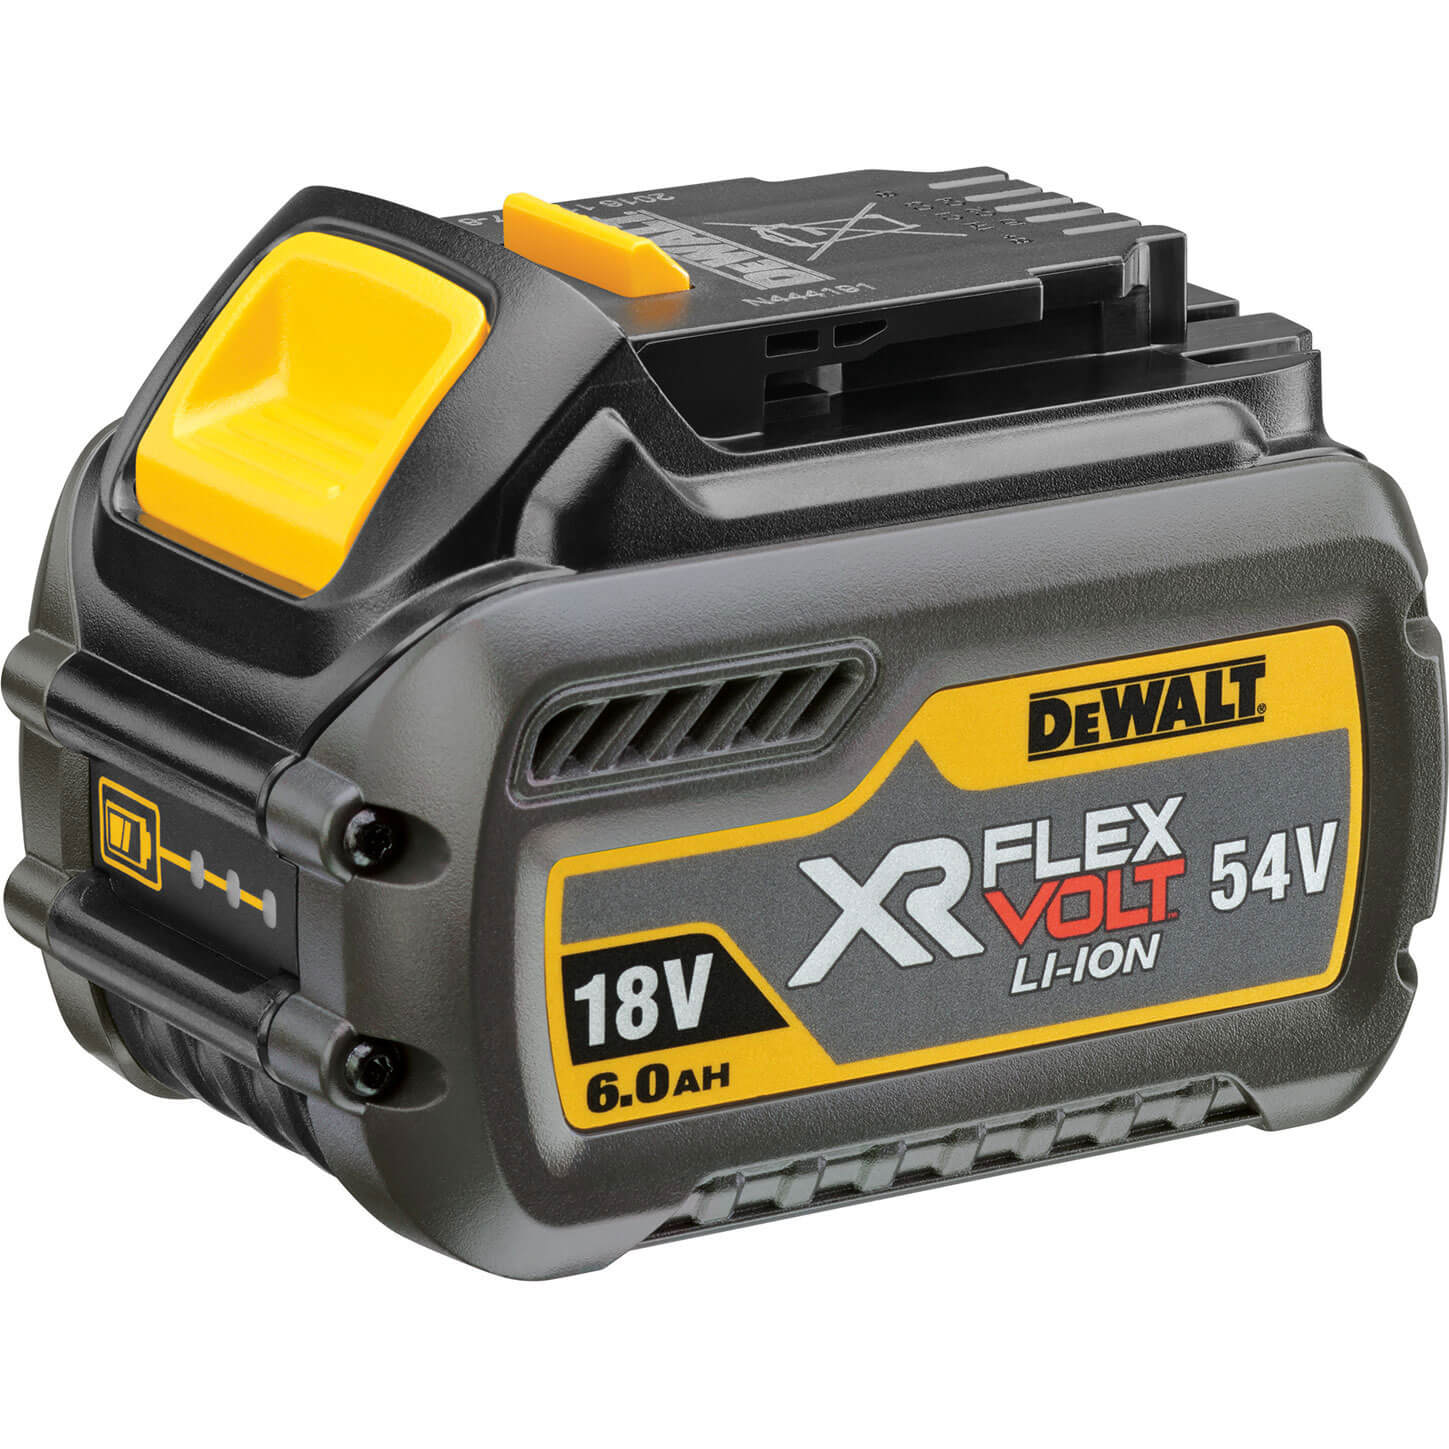 Image of DeWalt DCB546 54v Cordless XR FLEXVOLT Li-ion Battery 6ah 6ah